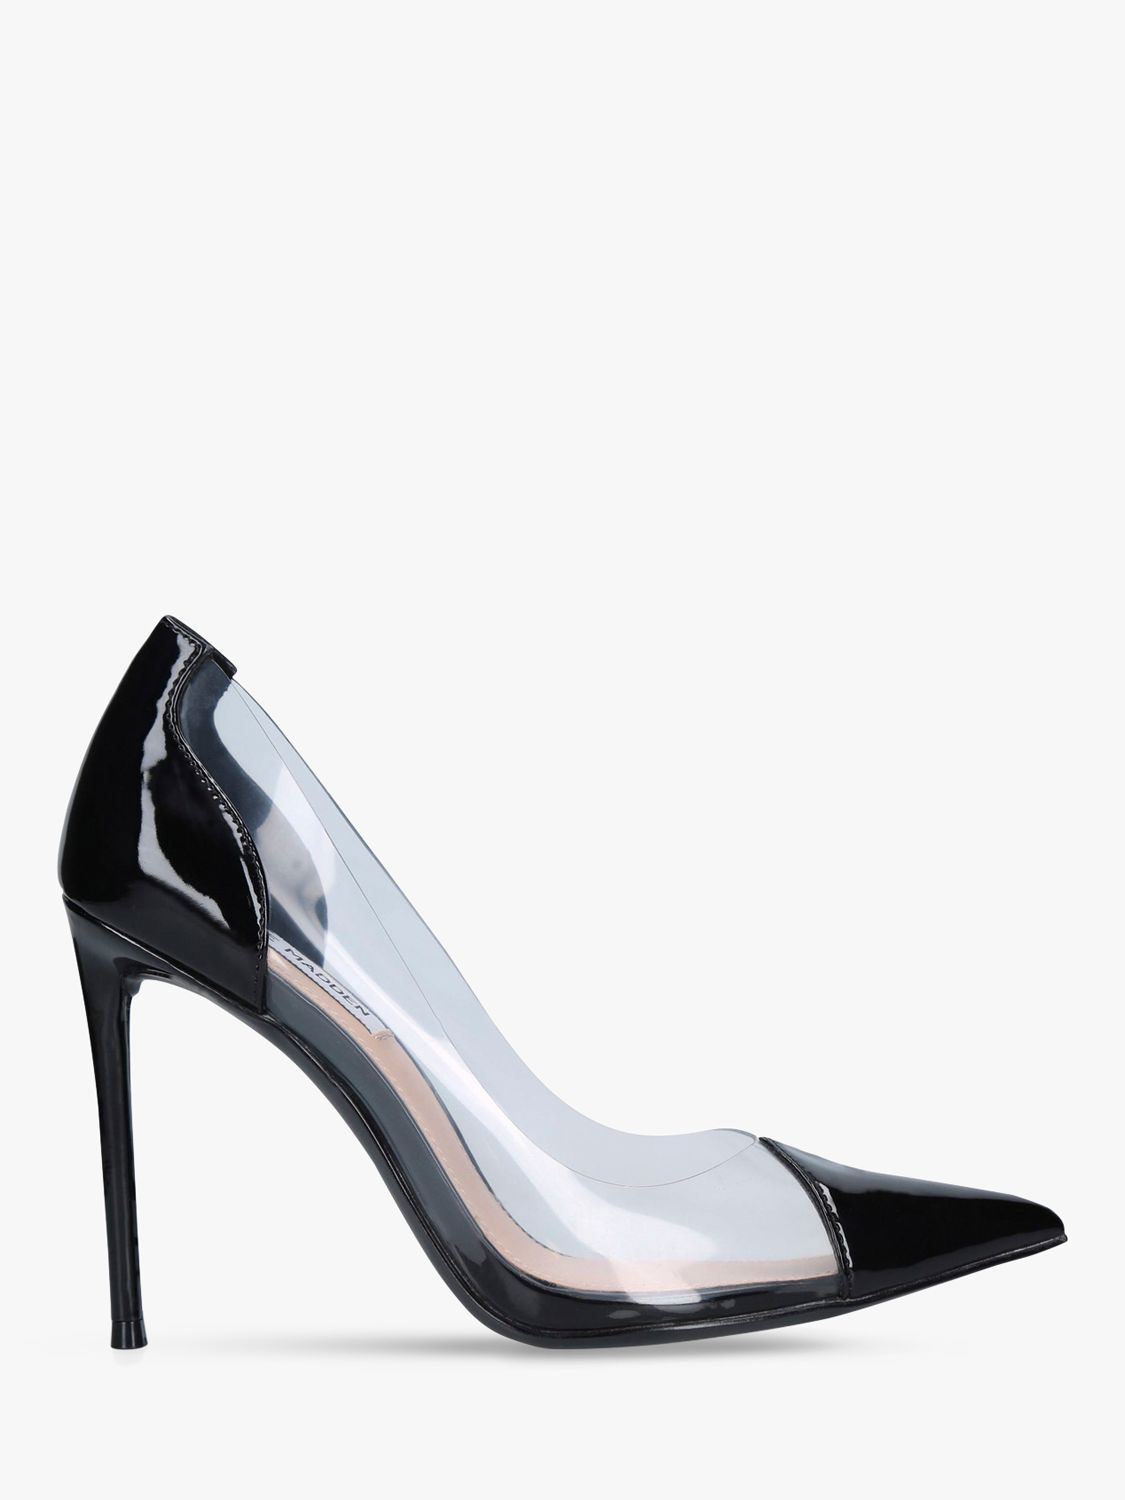 Steve Madden Steve Madden Malibu Transparent Stiletto Heel Court Shoes, Black